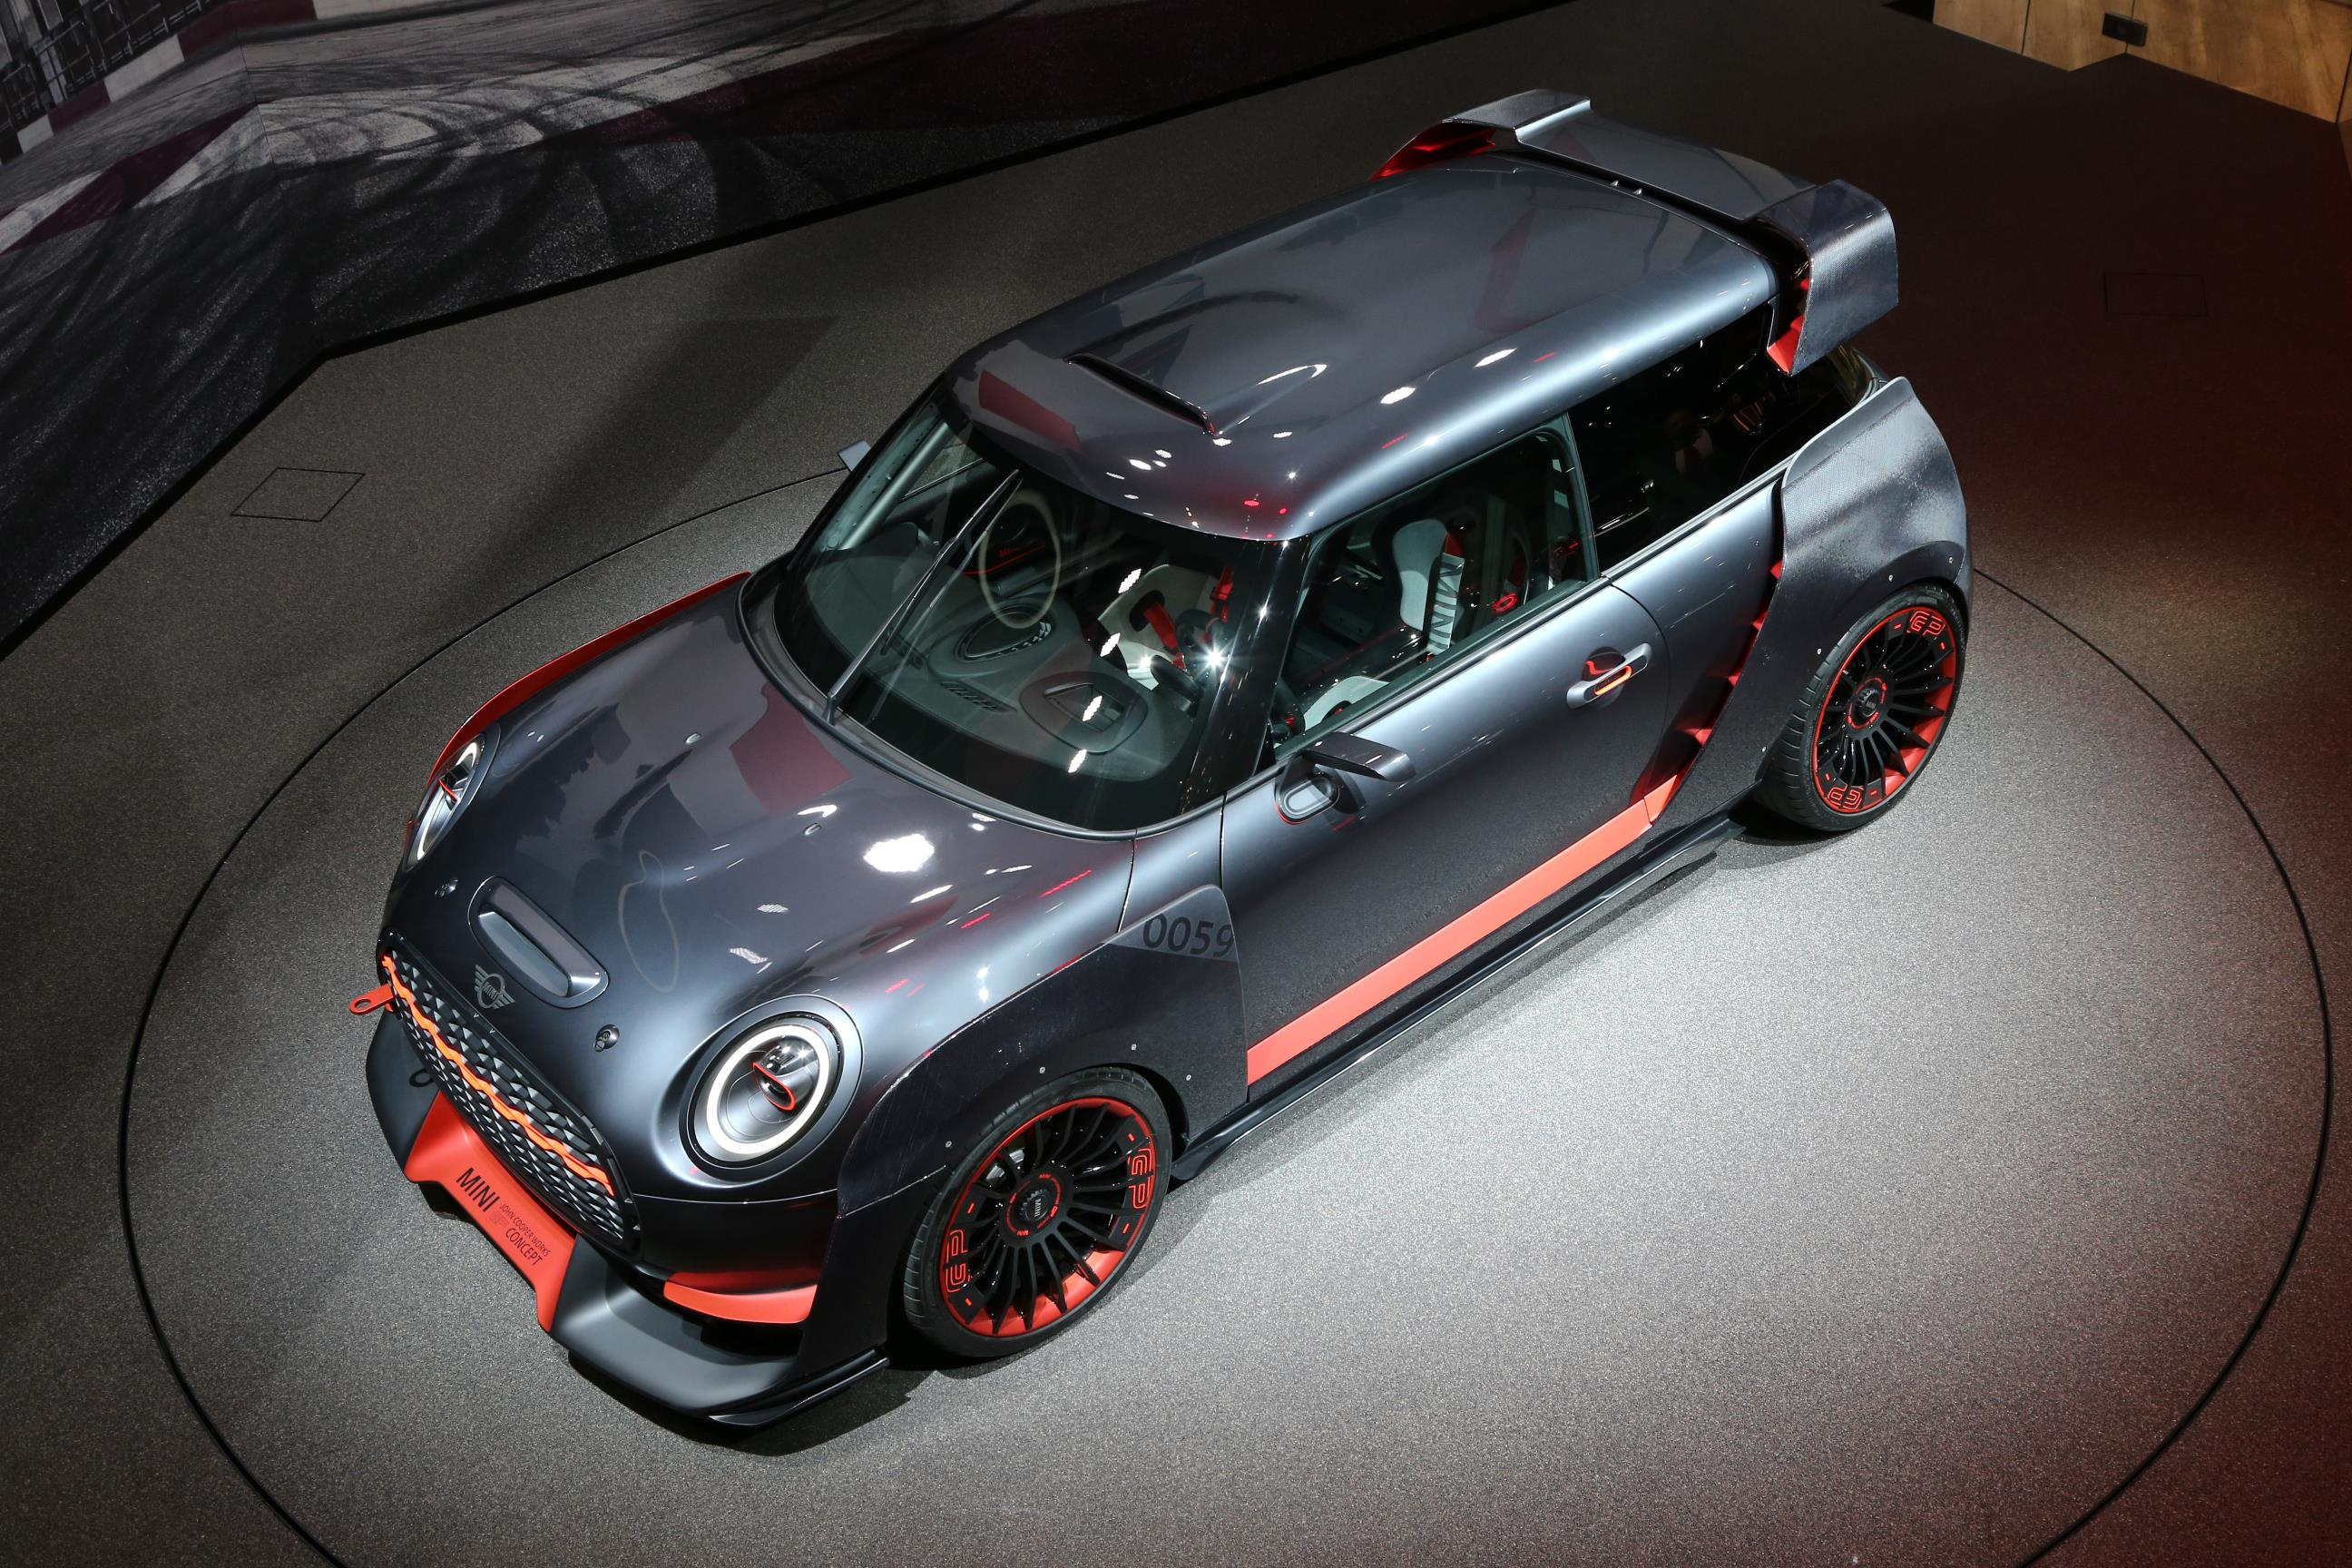 62 All New 2020 Mini Cooper Clubman Price Design and Review